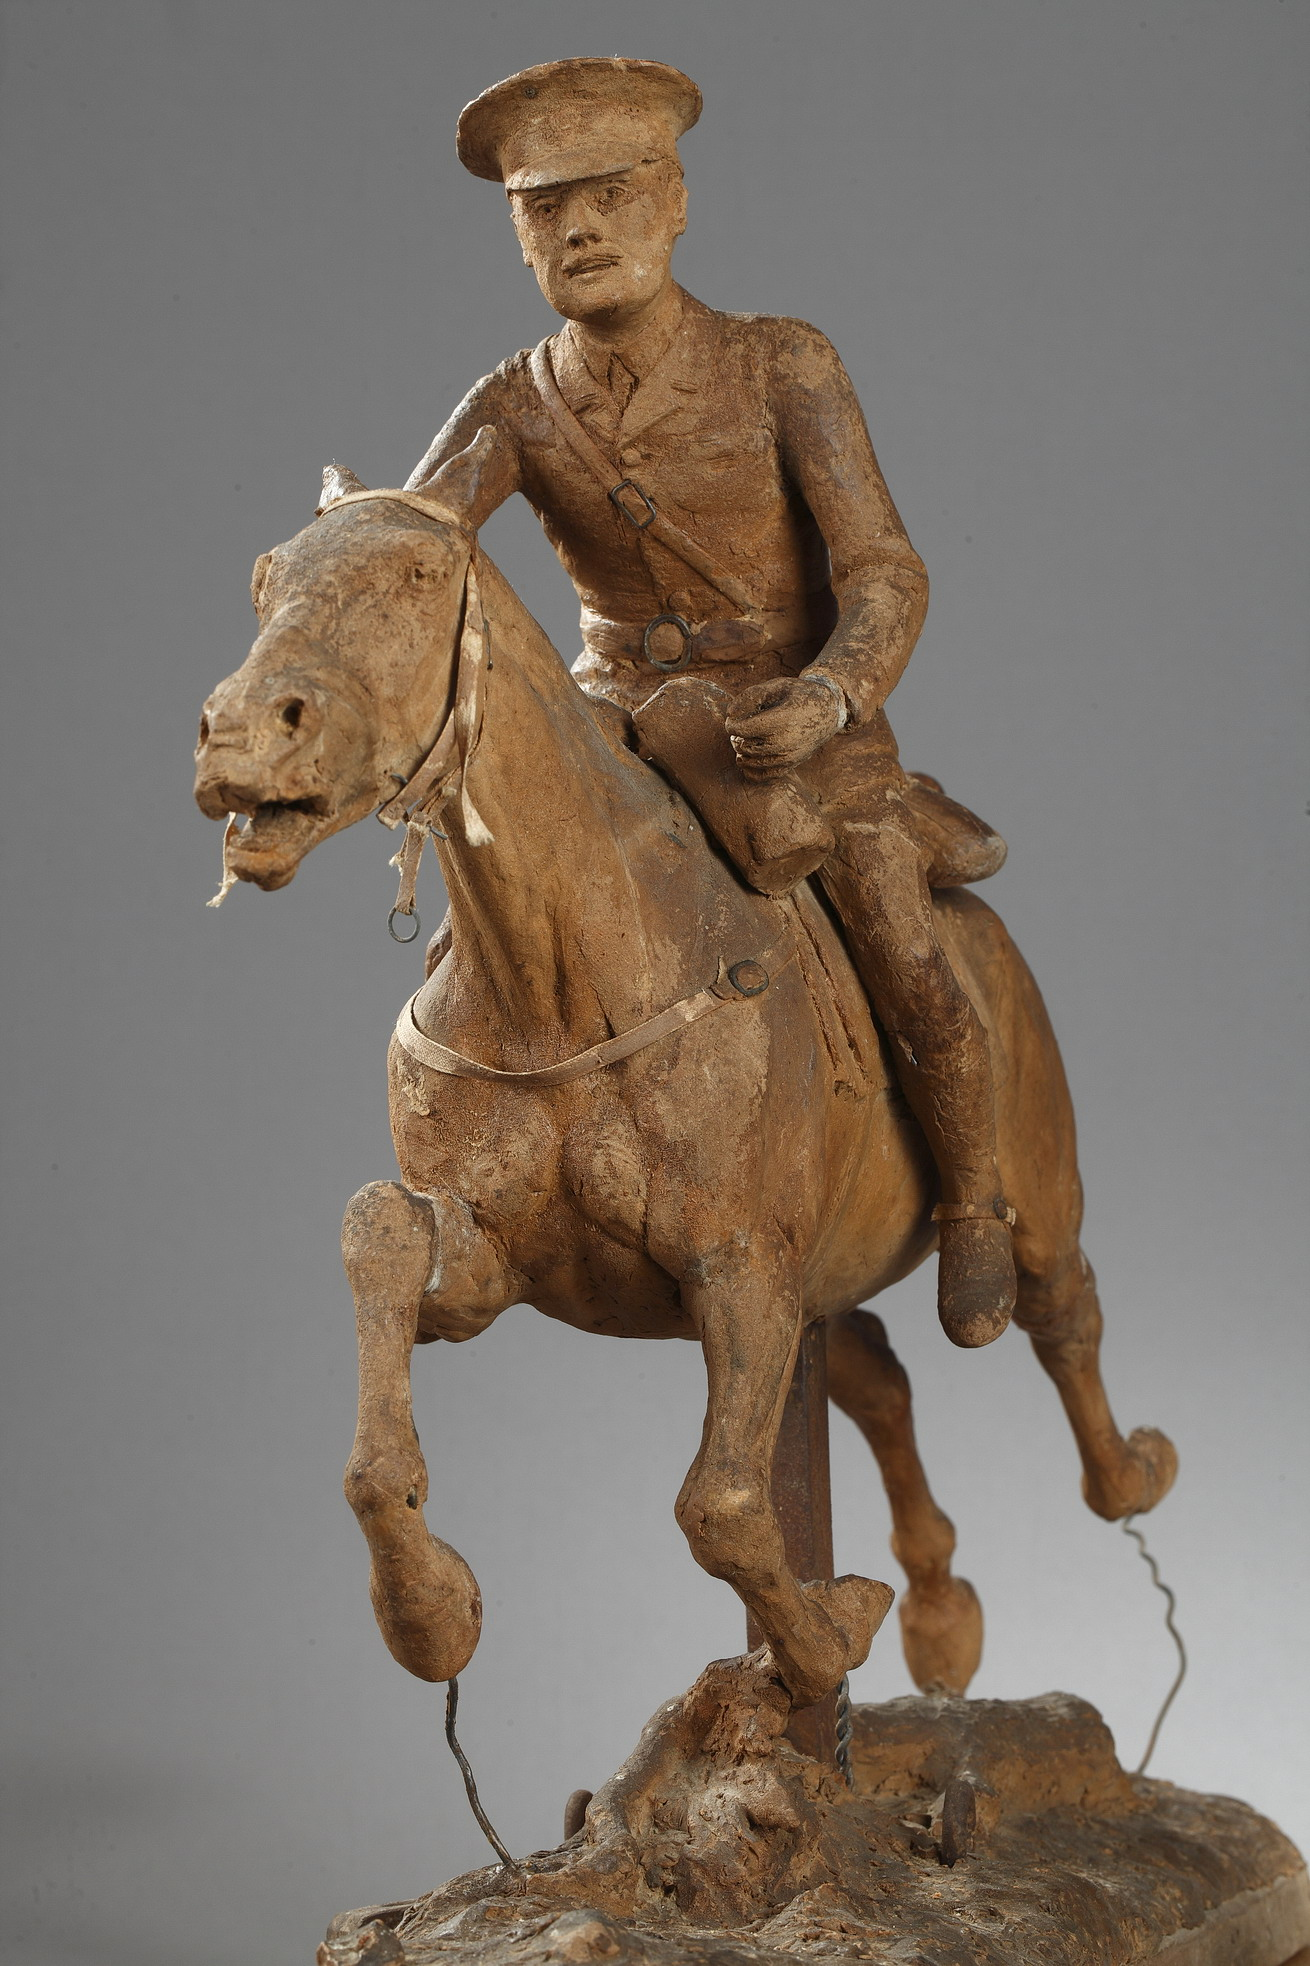 attr. Gaston d'Illiers (1876-1932), Cavalier Anglais, cire originale, haut. 42 cm, sculptures - galerie Tourbillon, Paris